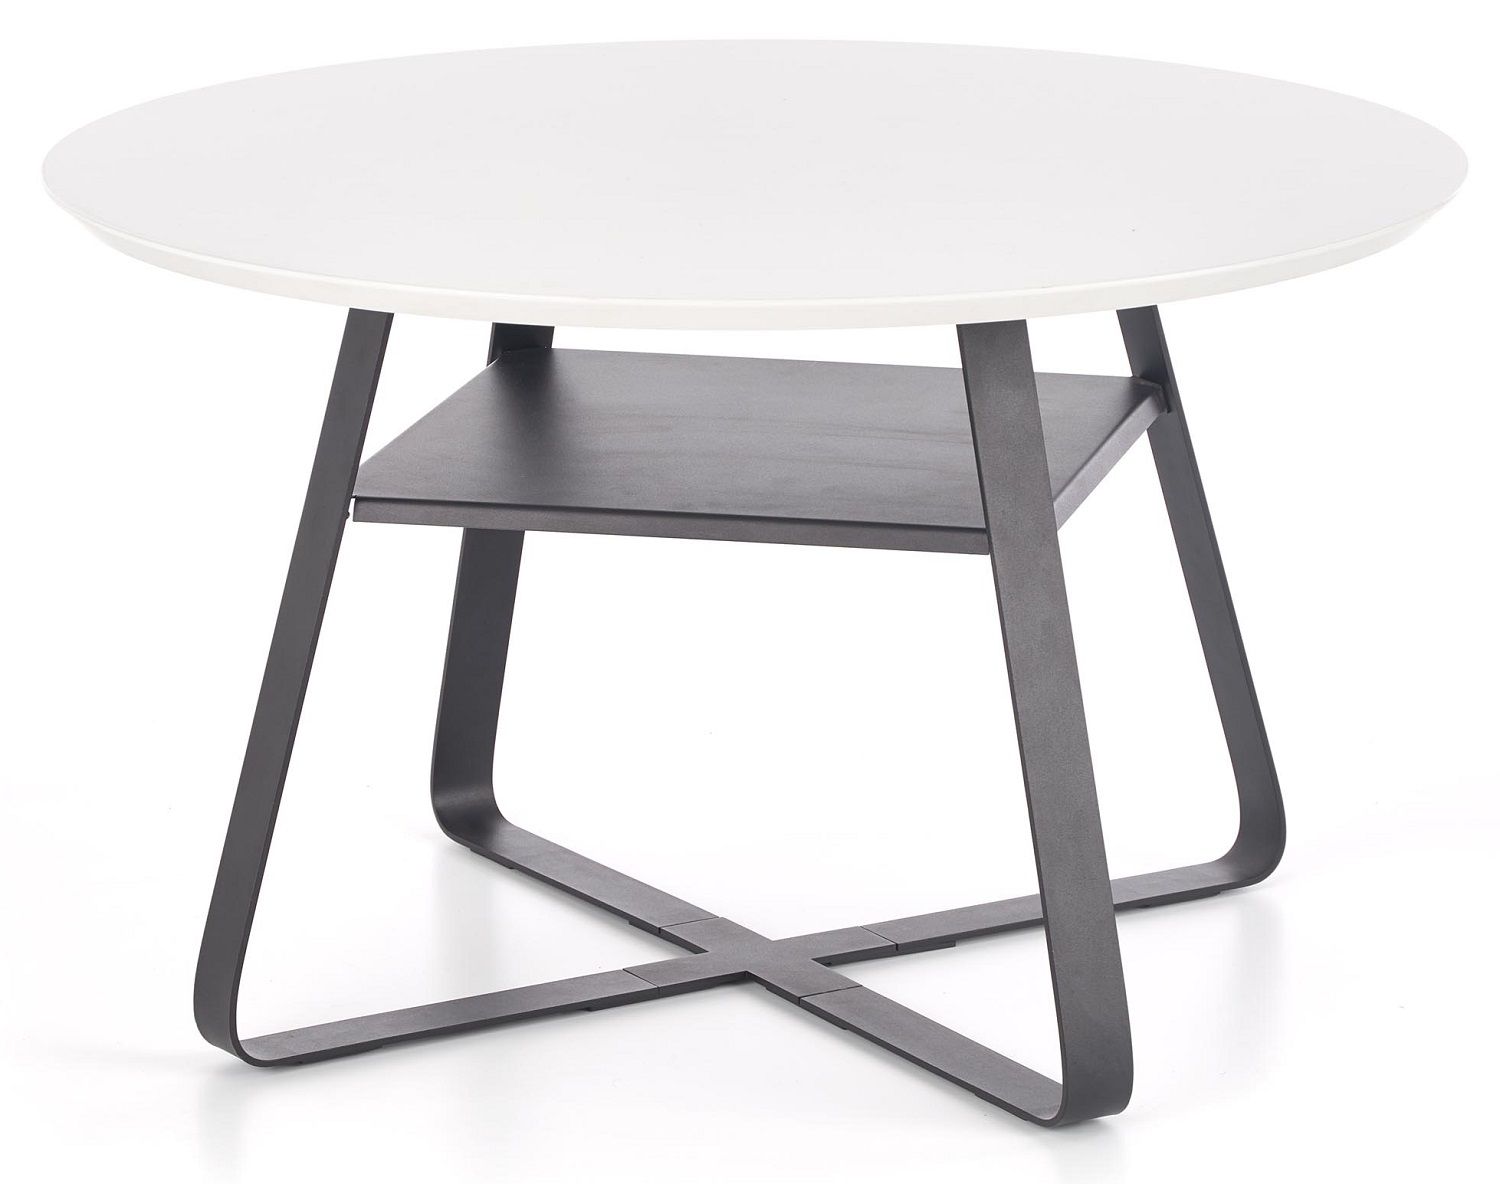 Ronde salontafel Redo 75 cm breed in wit | Home Style